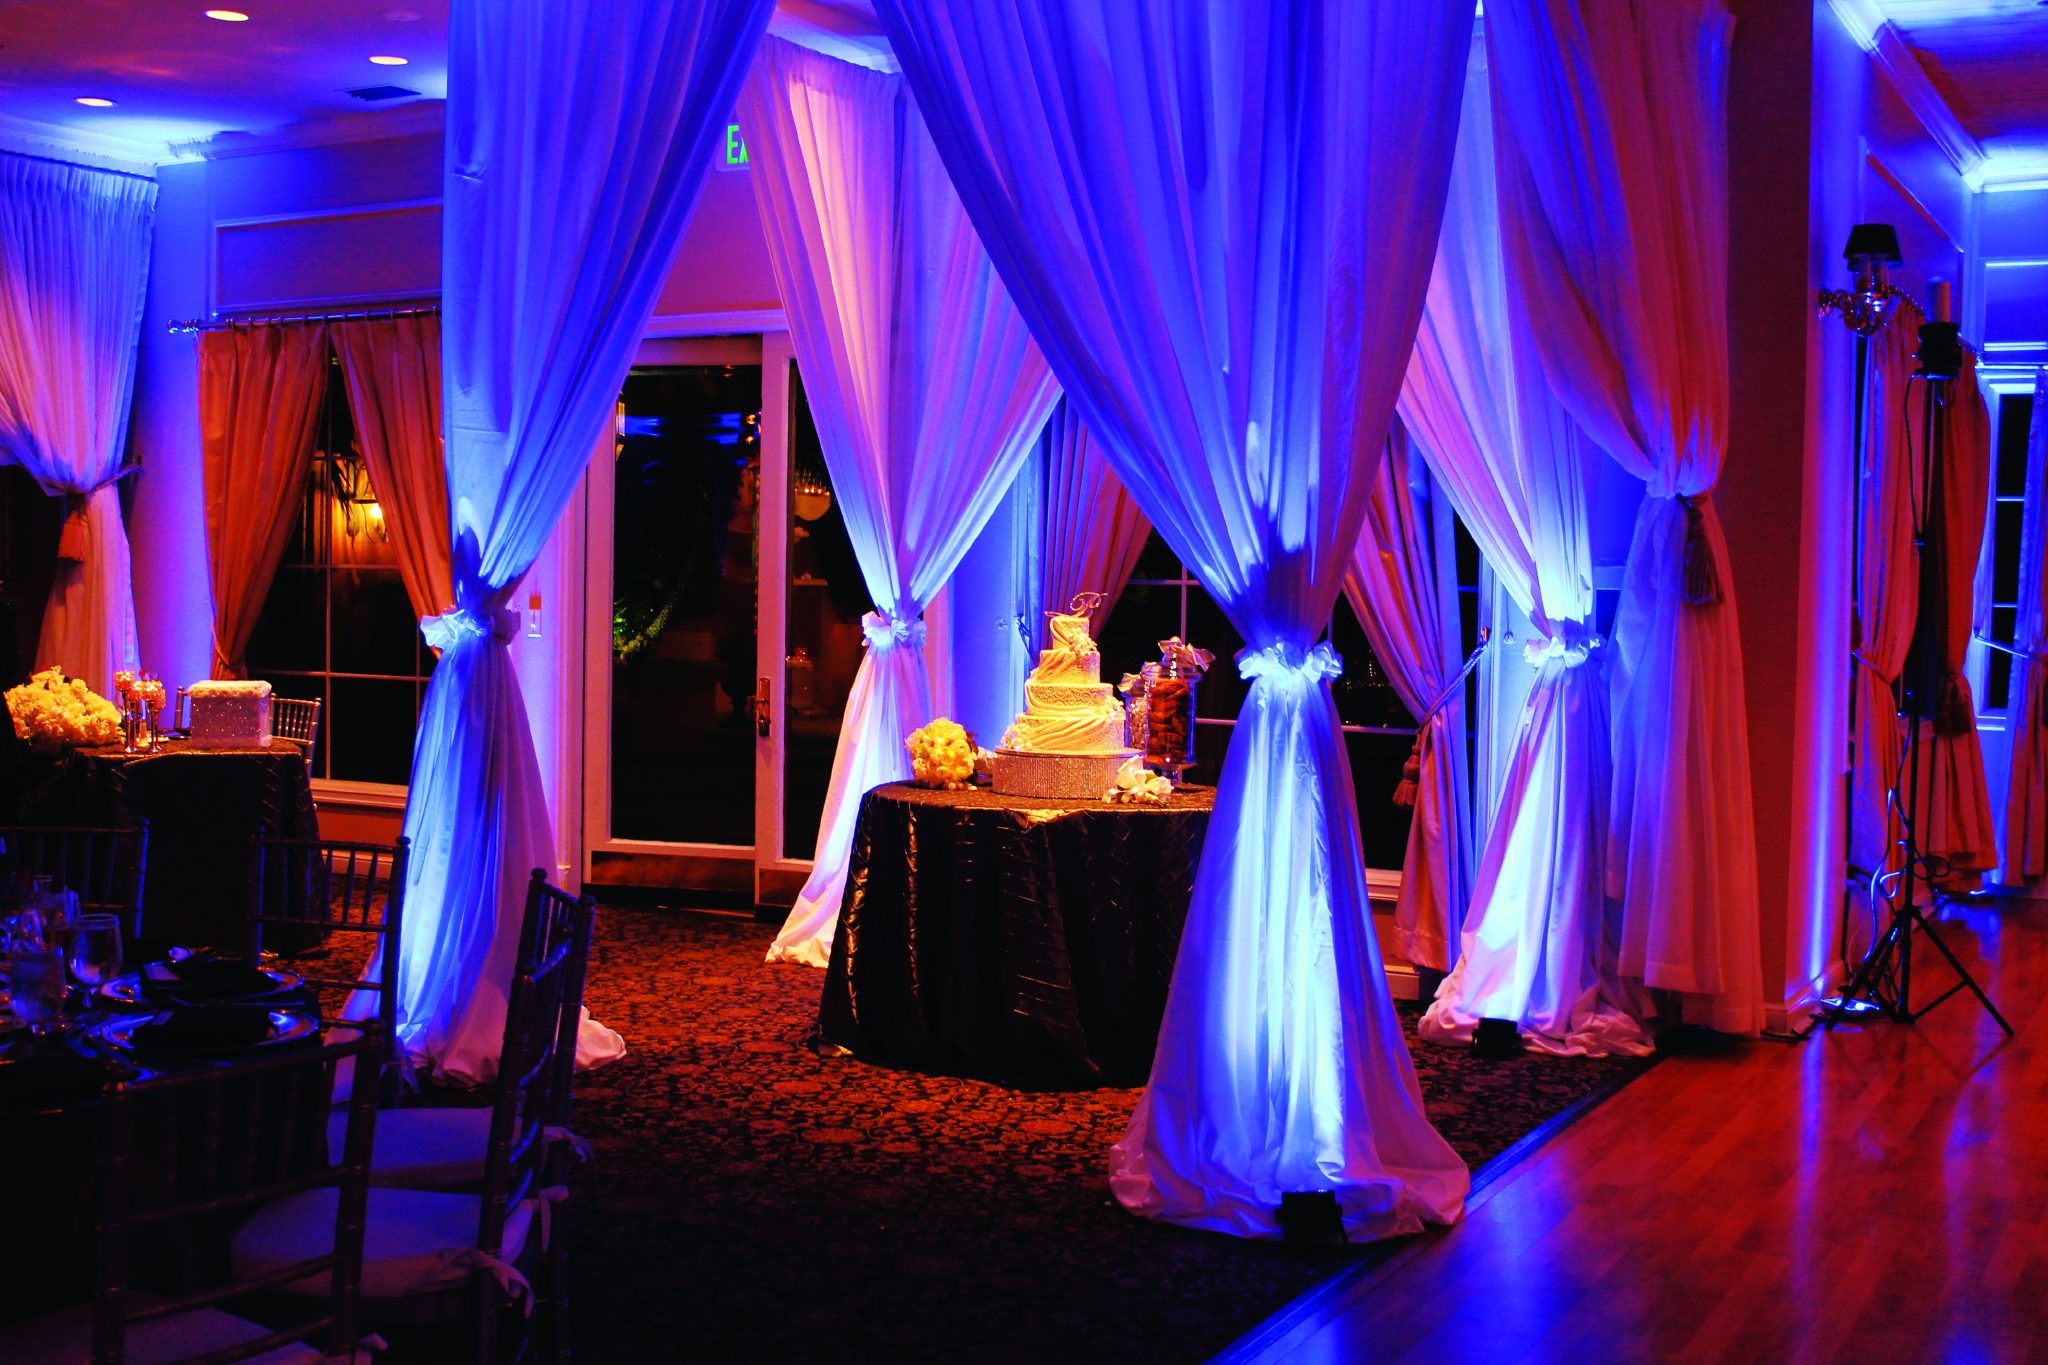 drapes event draping bkdp hardware hoop events party banquet to ceiling how panel free products tool for kit wedding hang